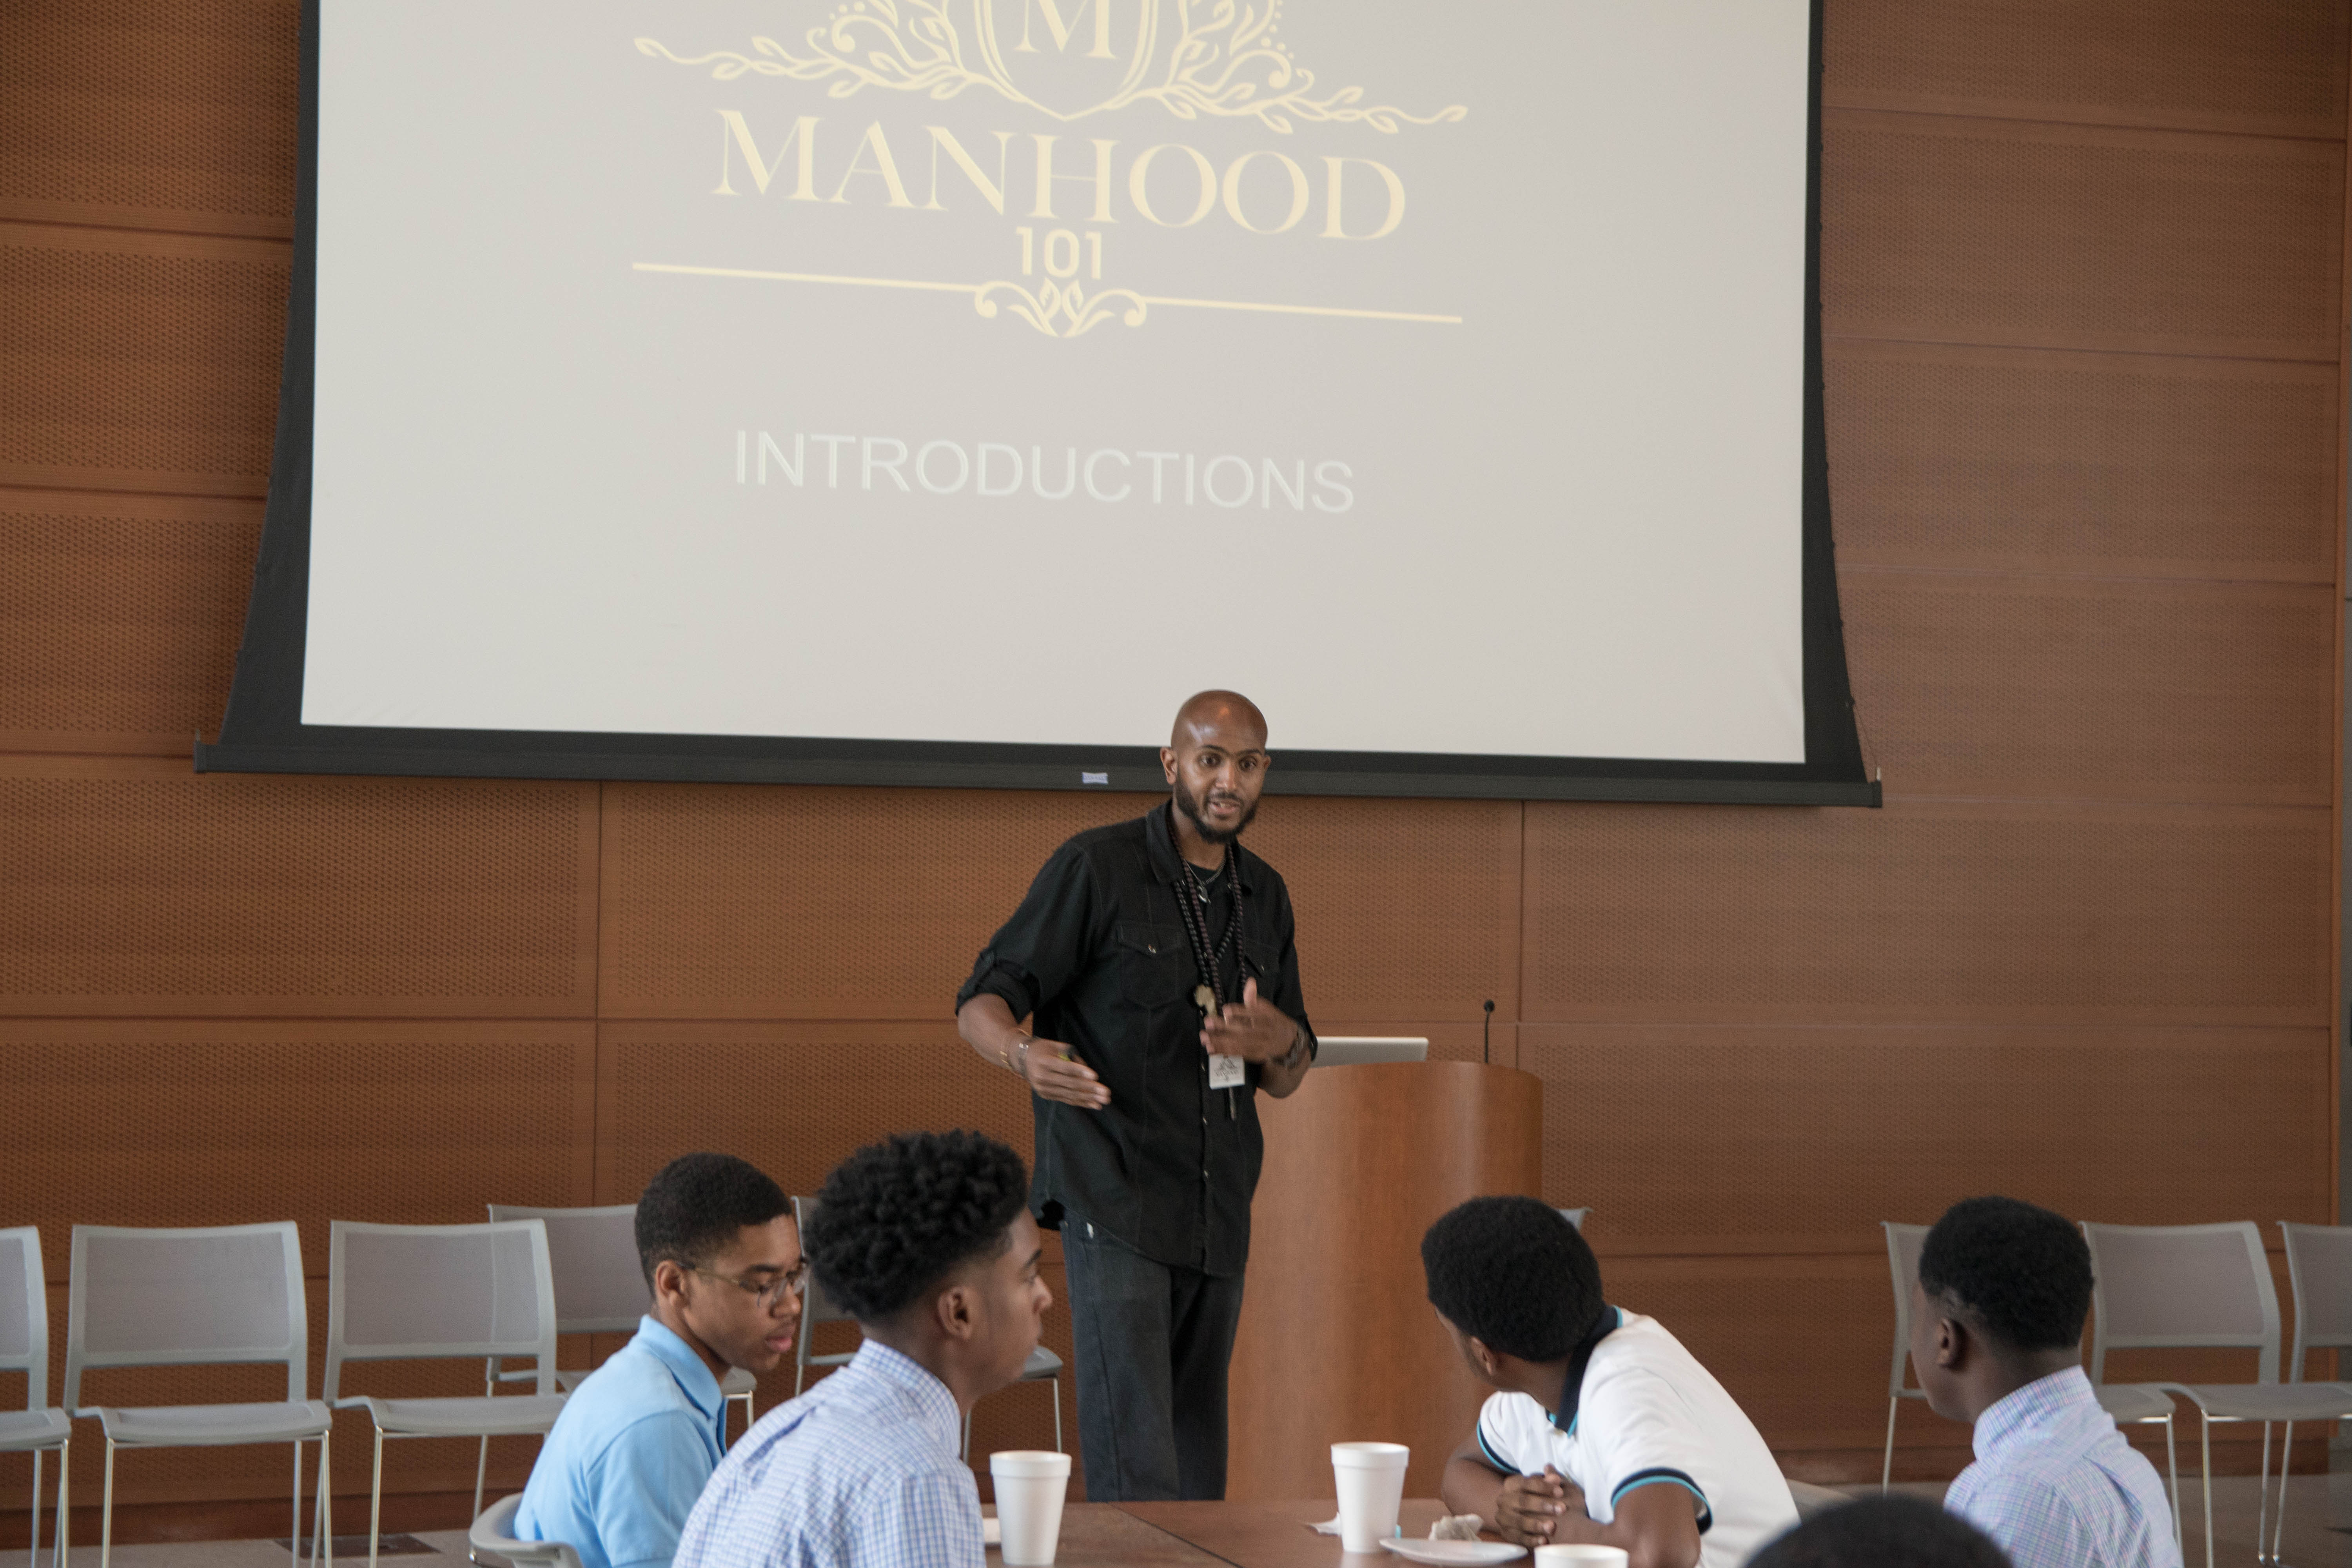 manhood-5-of-104